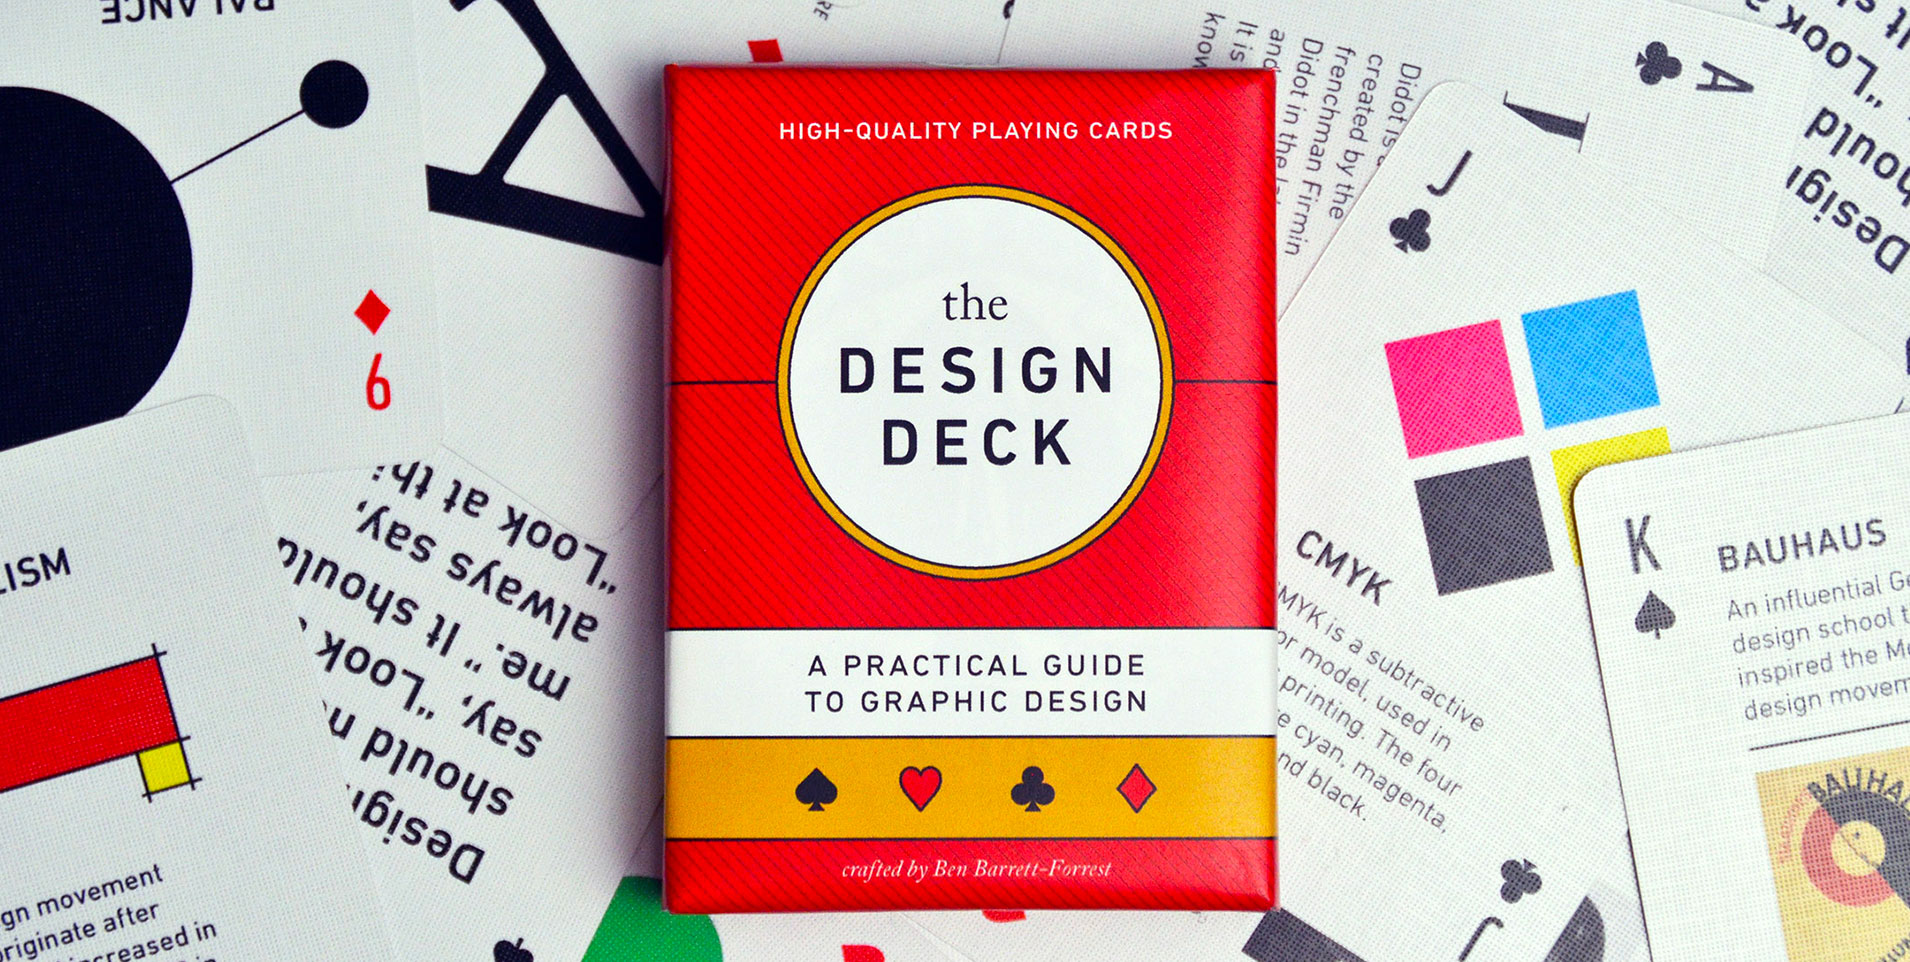 design deck - playing card decks